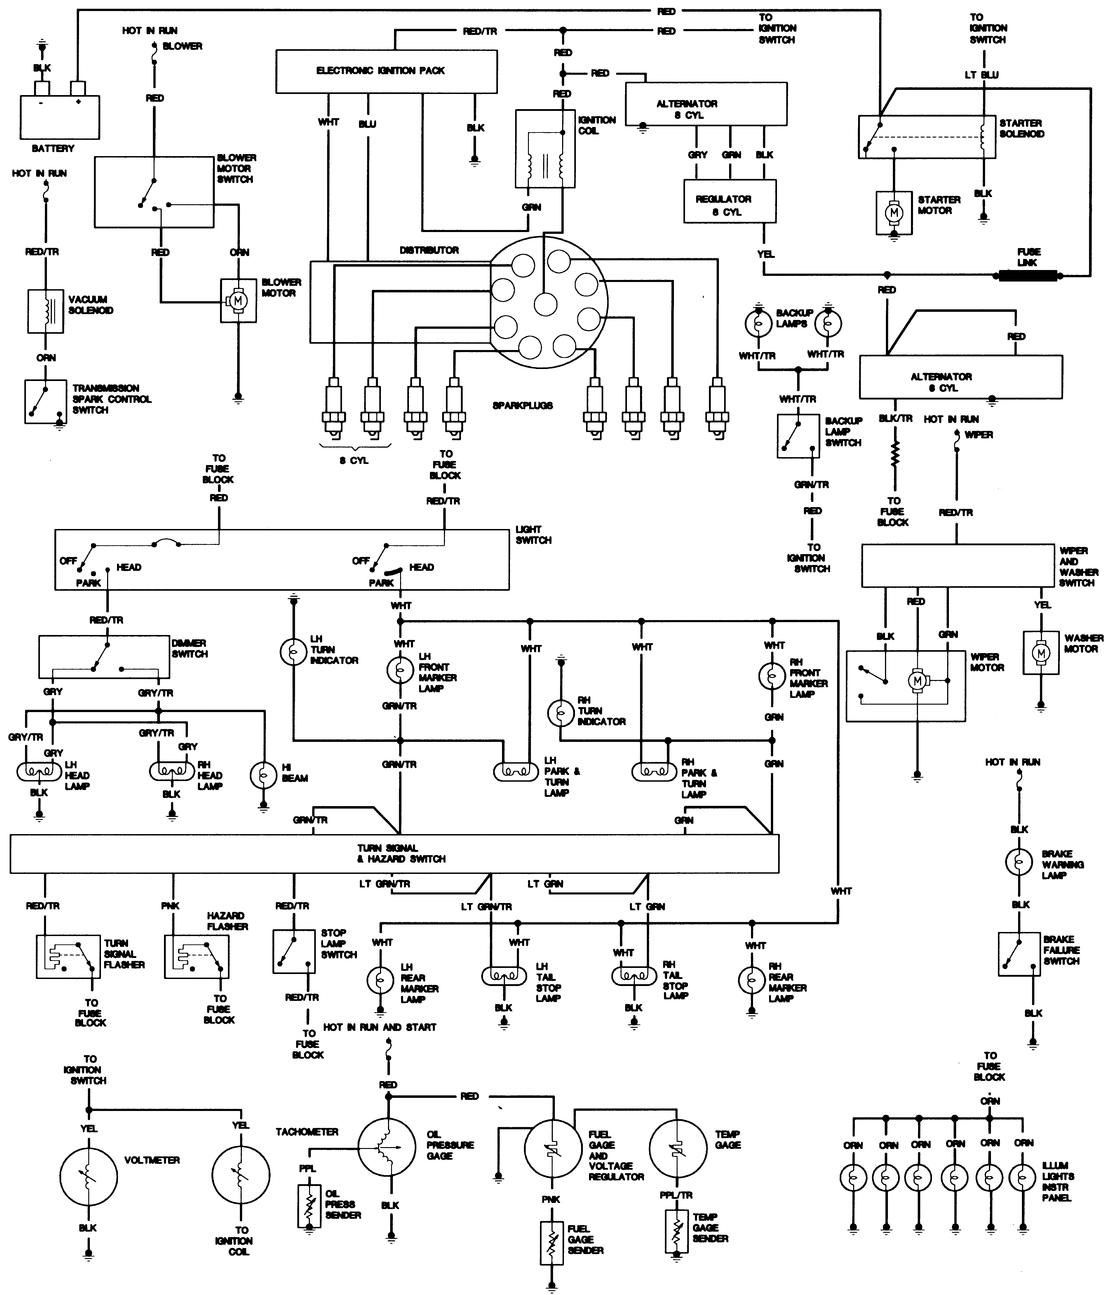 1974 cj5 wiring schematic